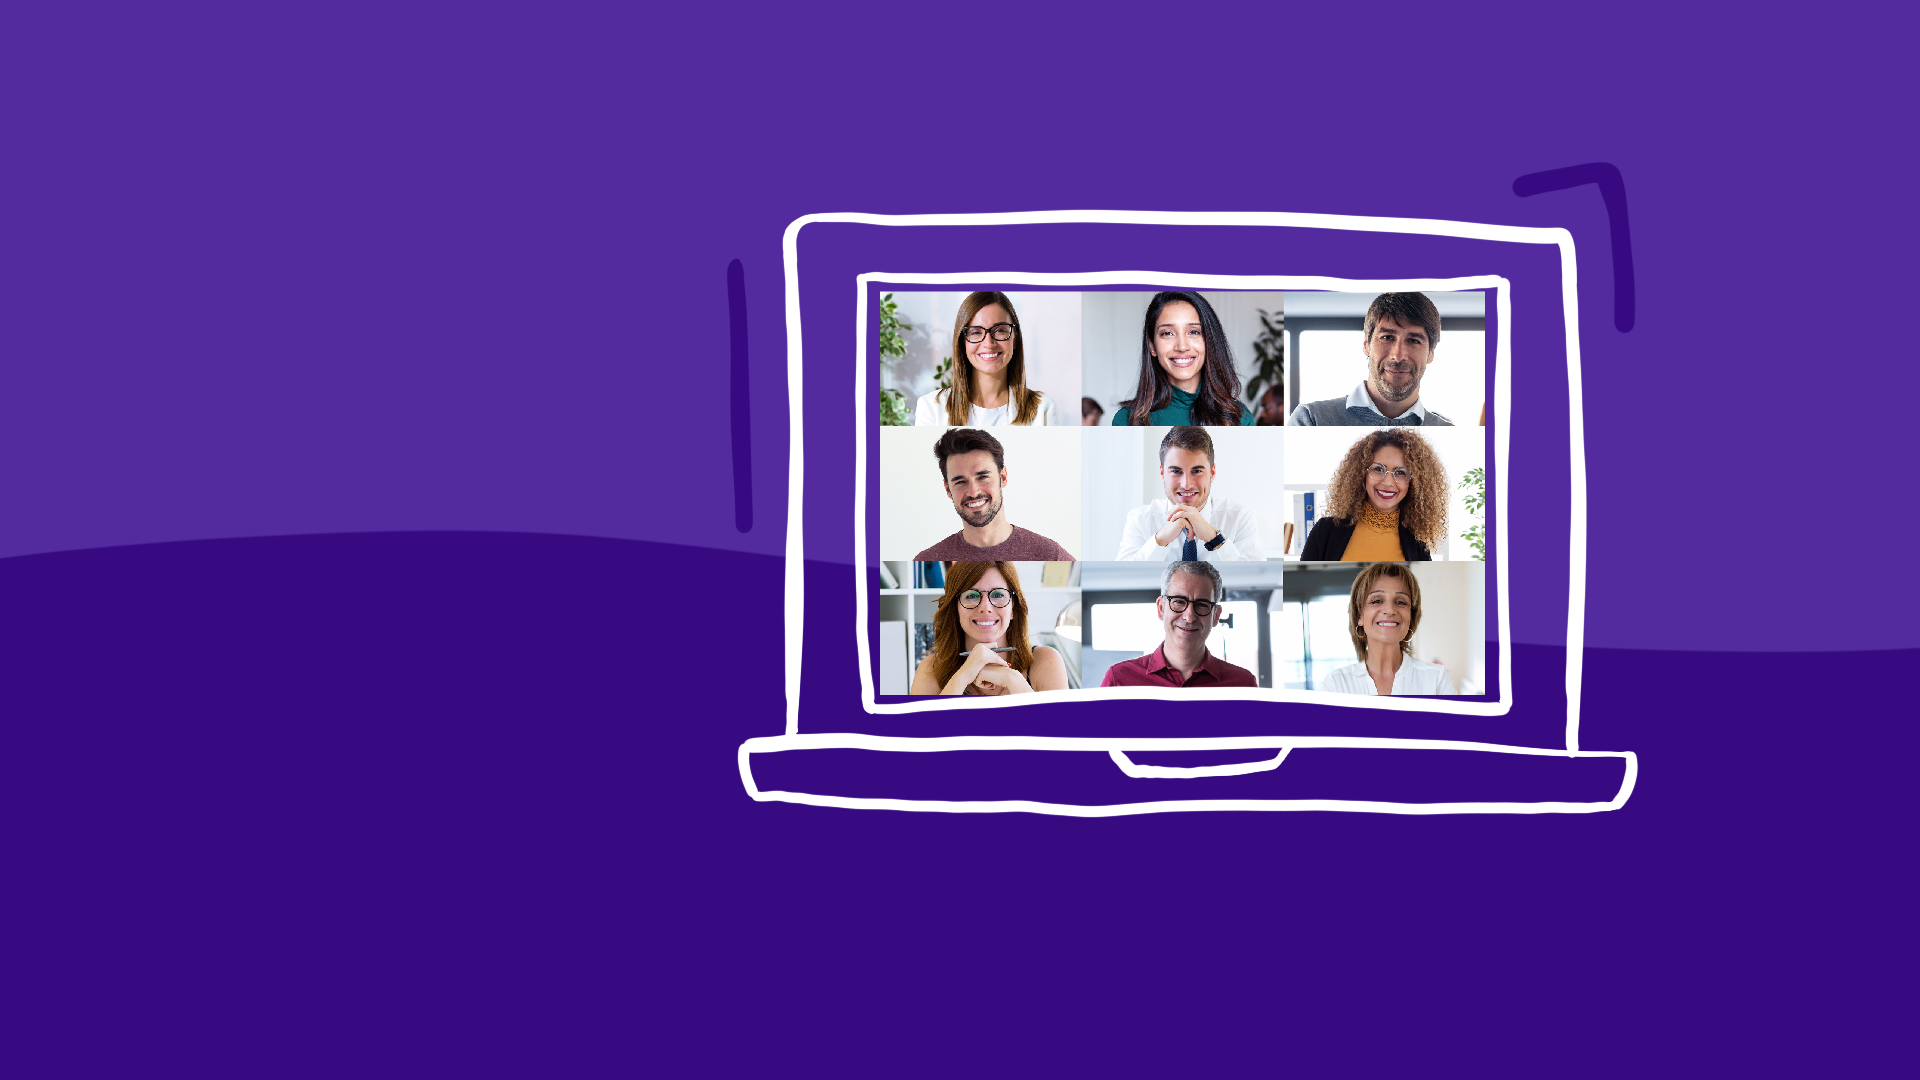 Have you experienced video conference anxiety? Here are 4 ways to cope